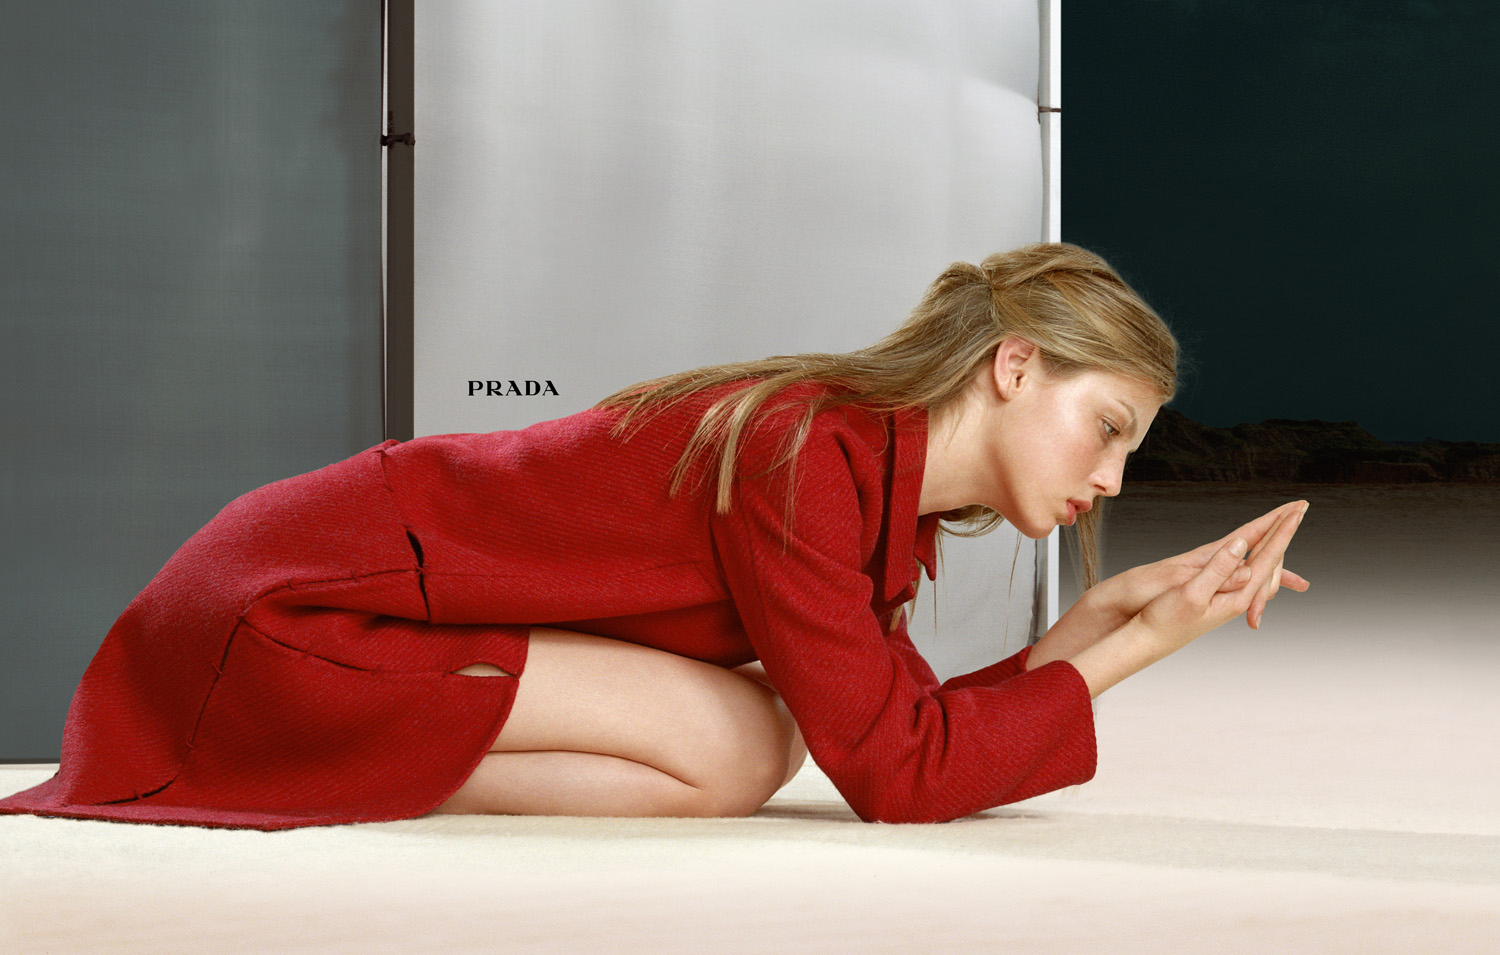 angela lindvall prada red coat advertising by norbert schoerner